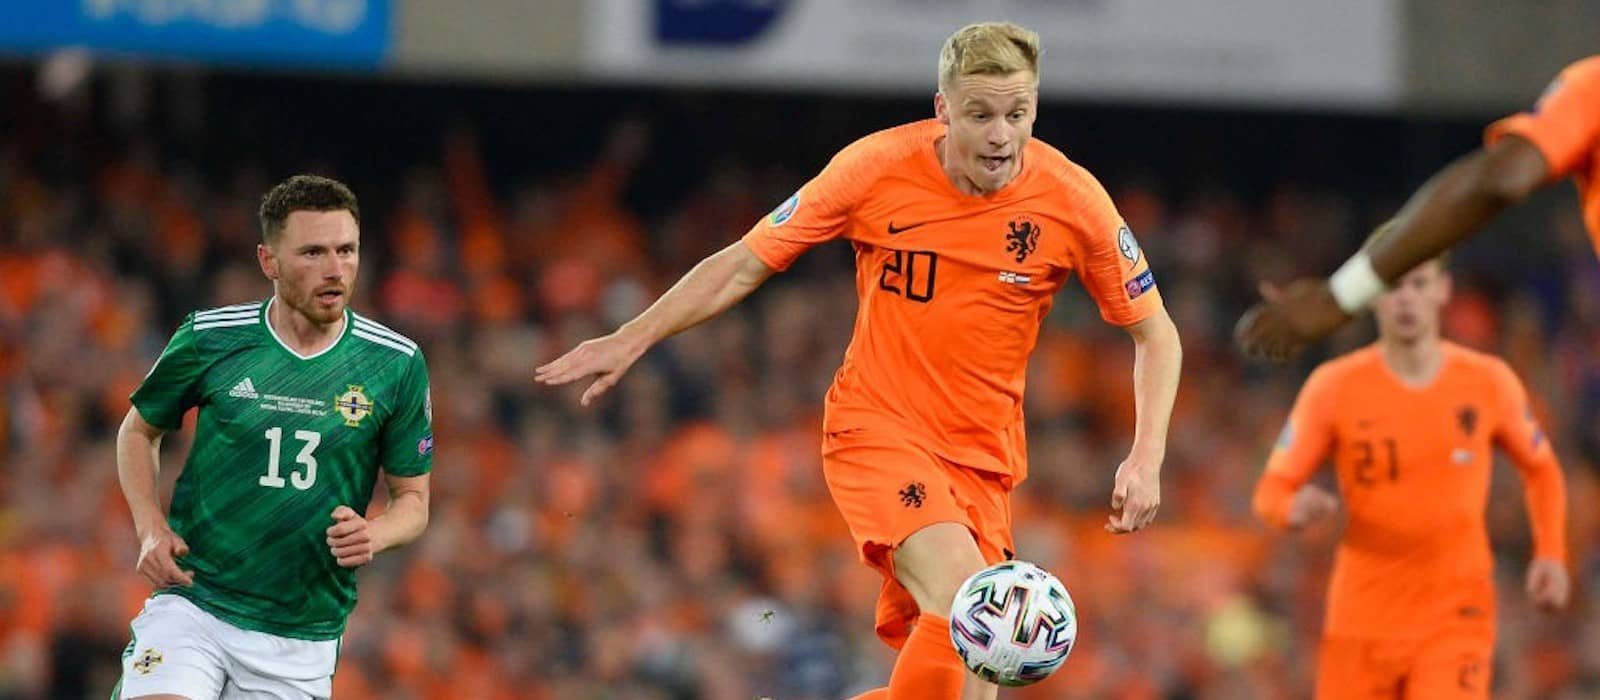 Ajax and Manchester United see eye to eye on Donny van de Beek